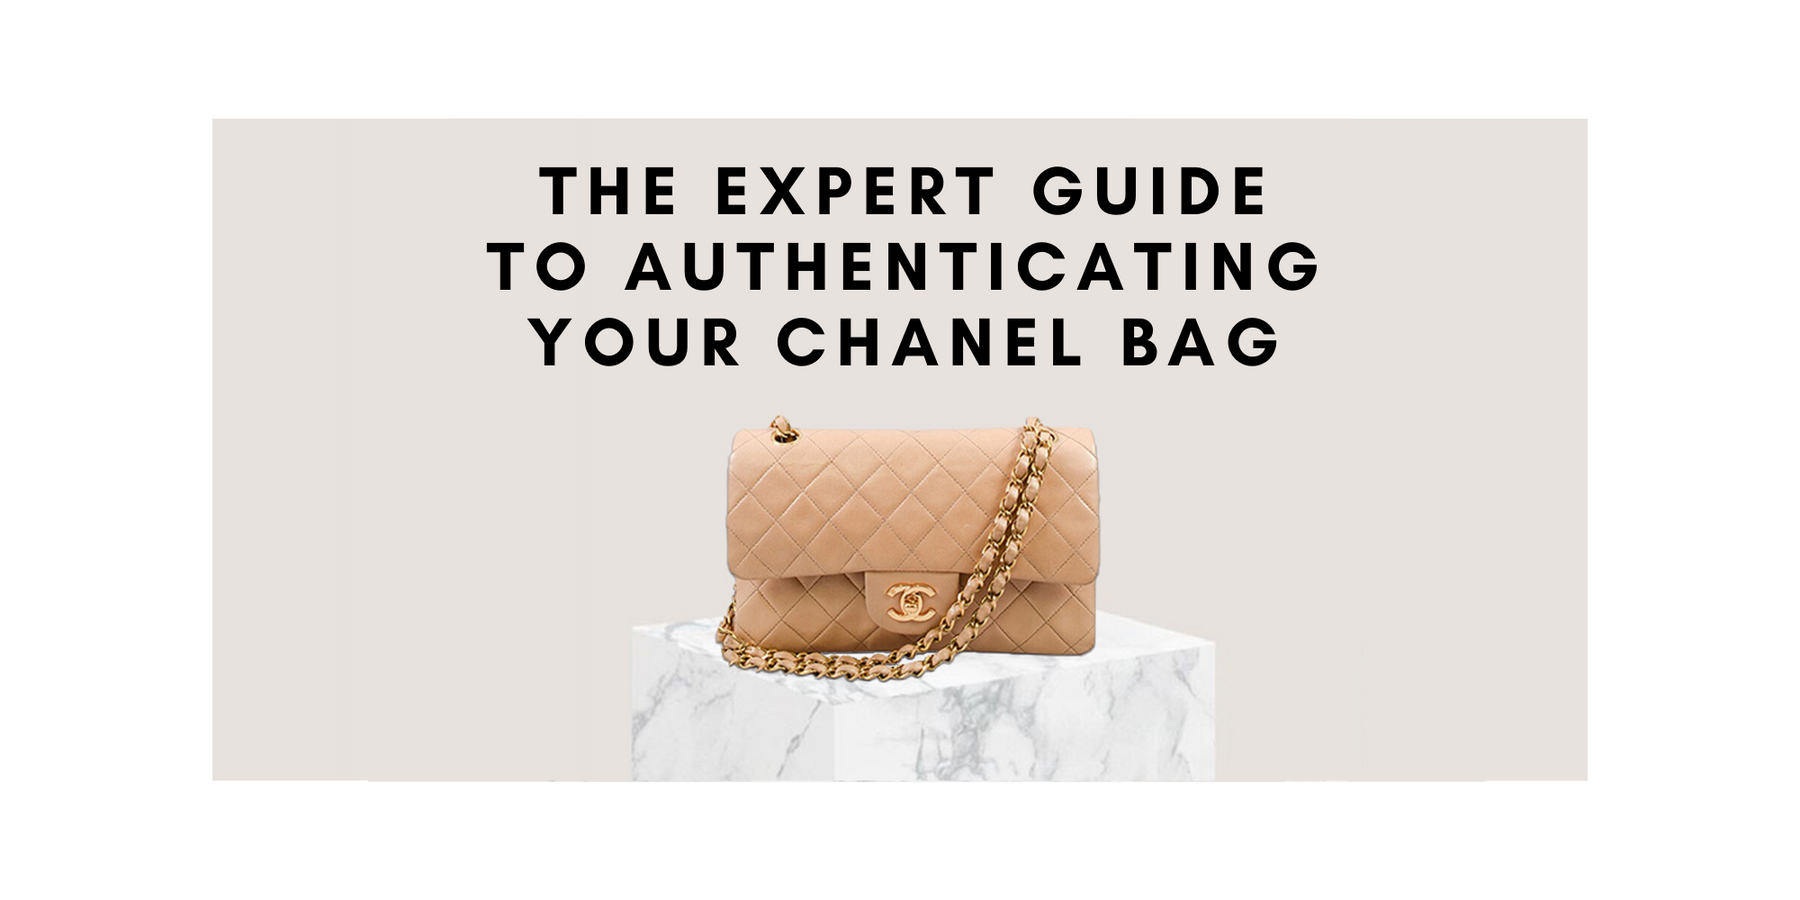 How To Authenticate A Chanel Bag